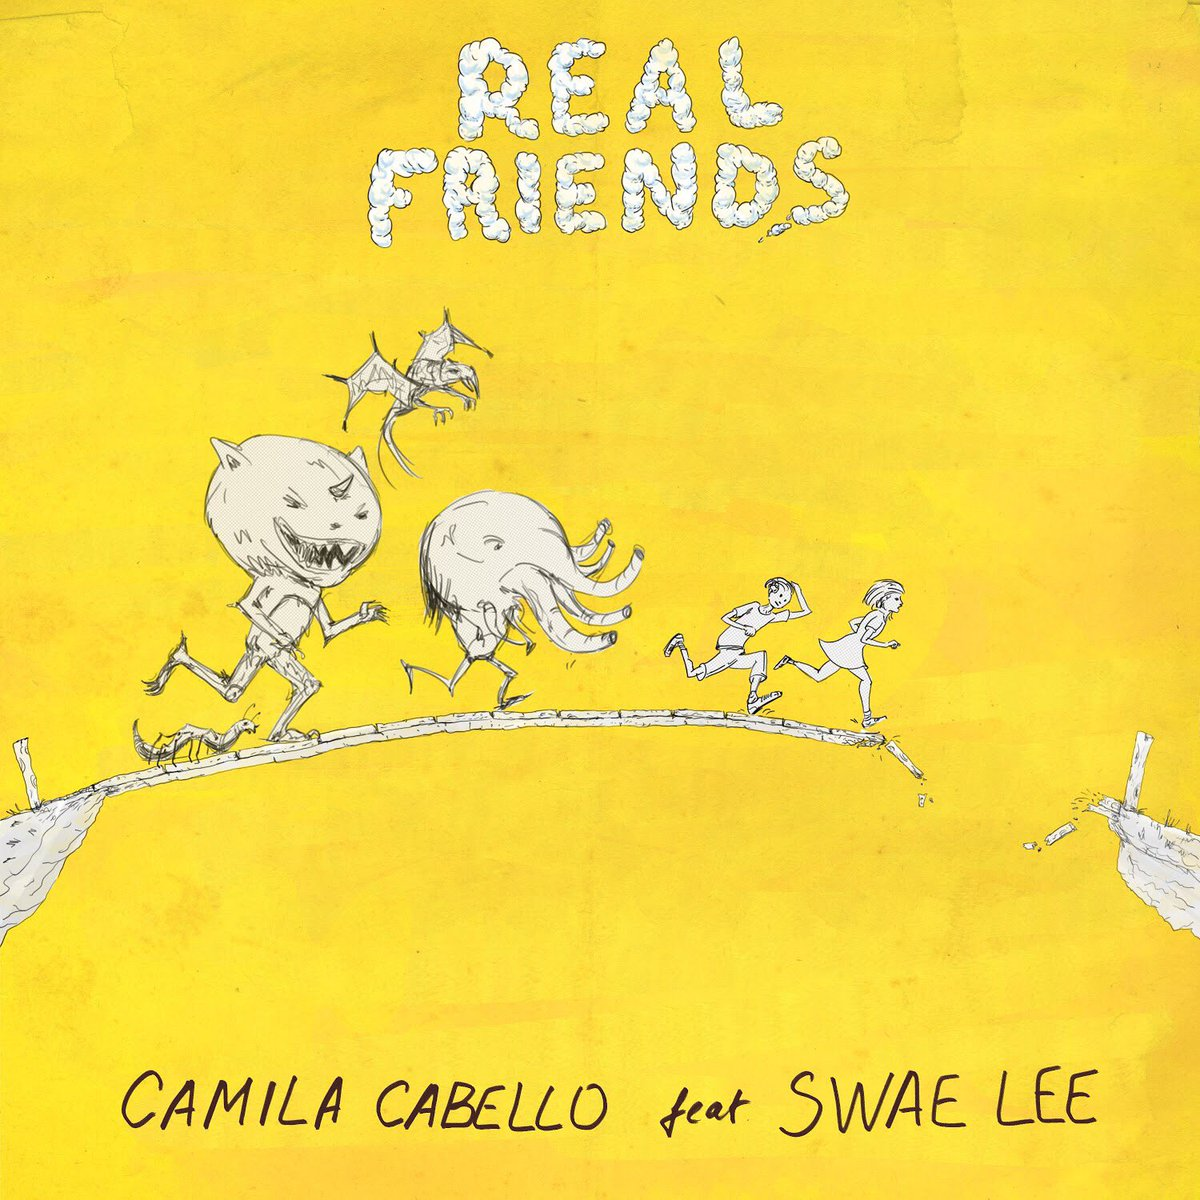 this one's for you 💛  #realfriends @goswaelee https://t.co/GOjJhKDuyE